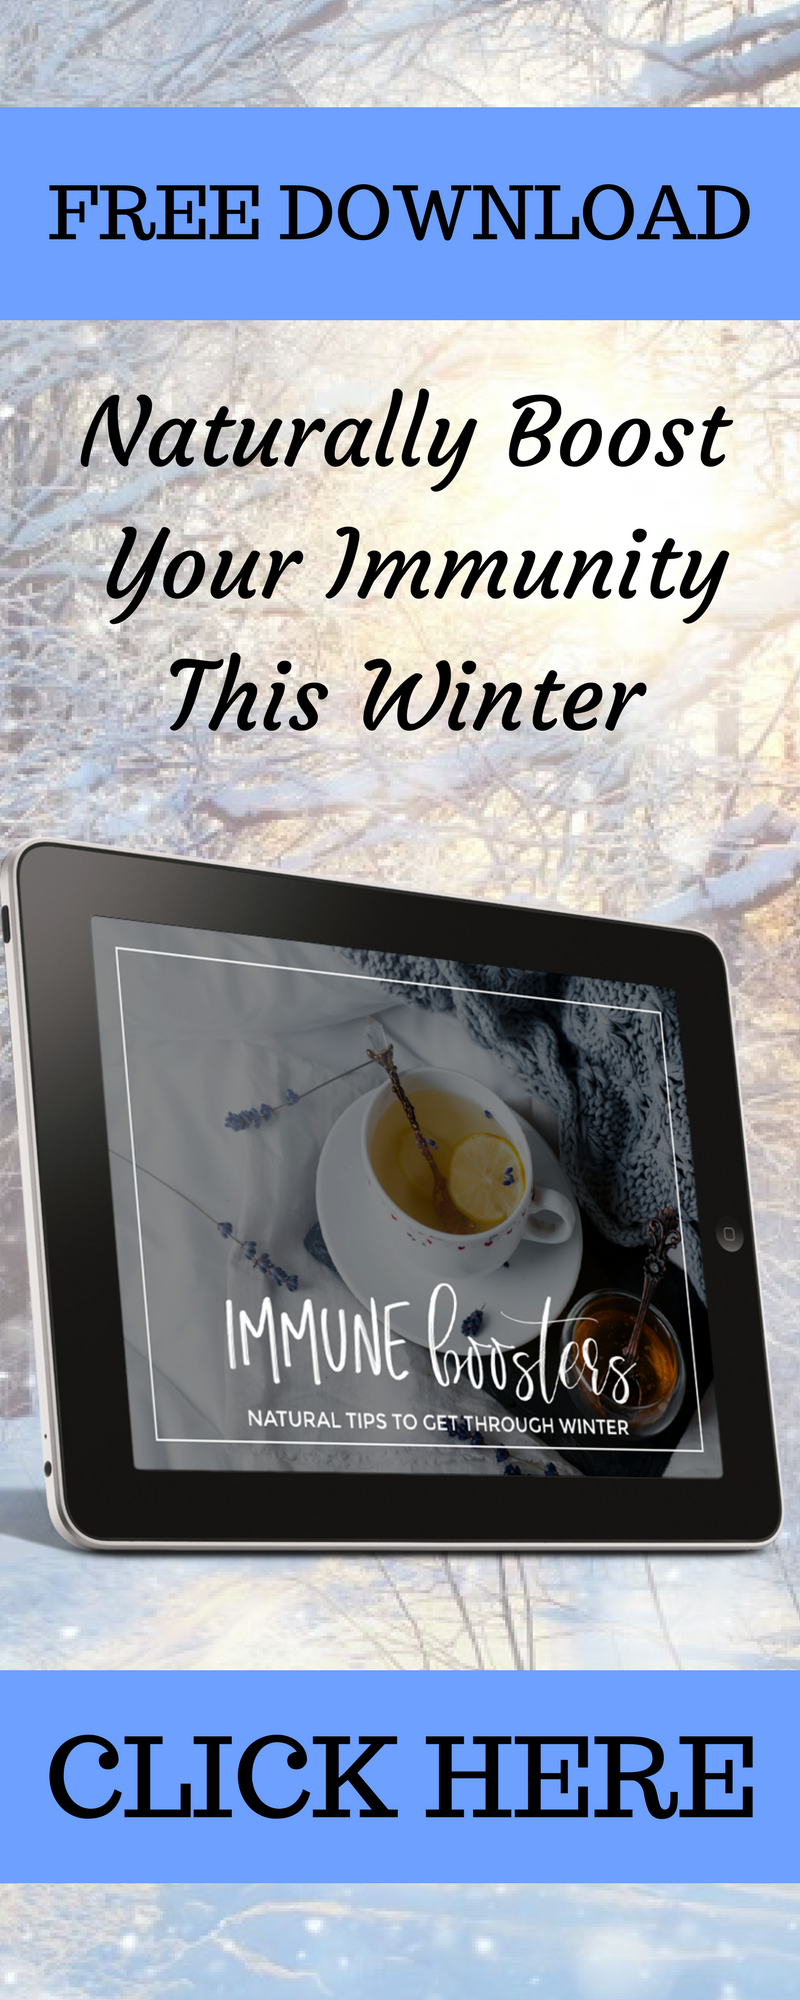 Naturally Boost Your Immunity This Winter